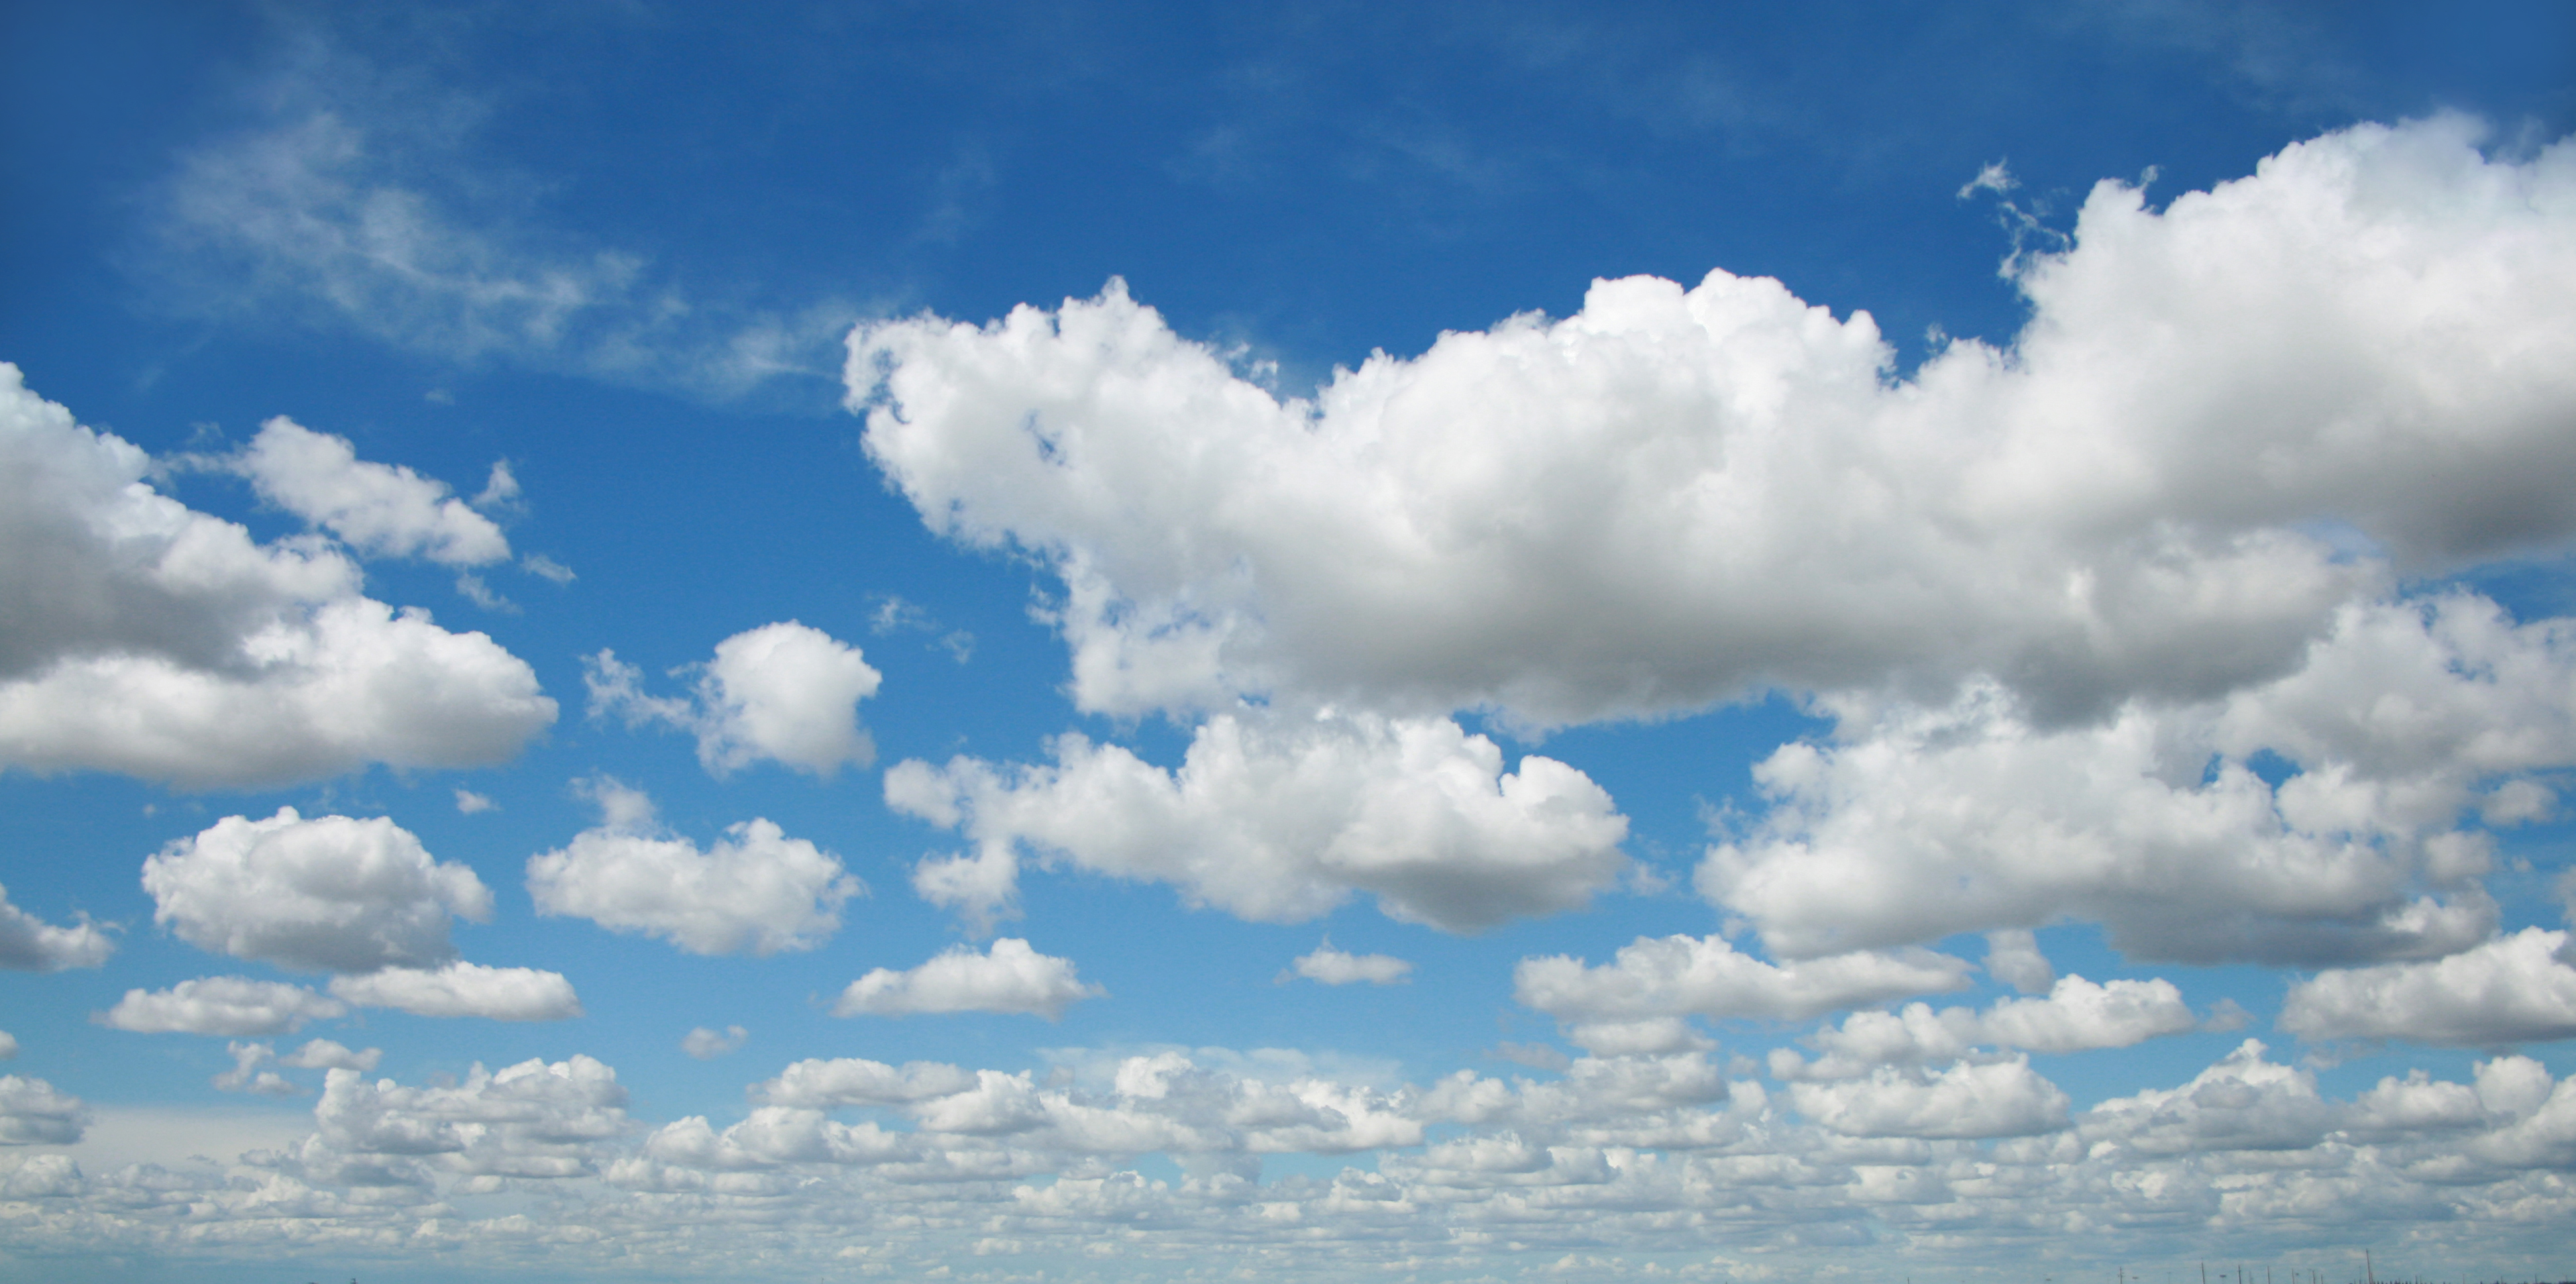 microsoft cloud certification could allow complex crm solutions to